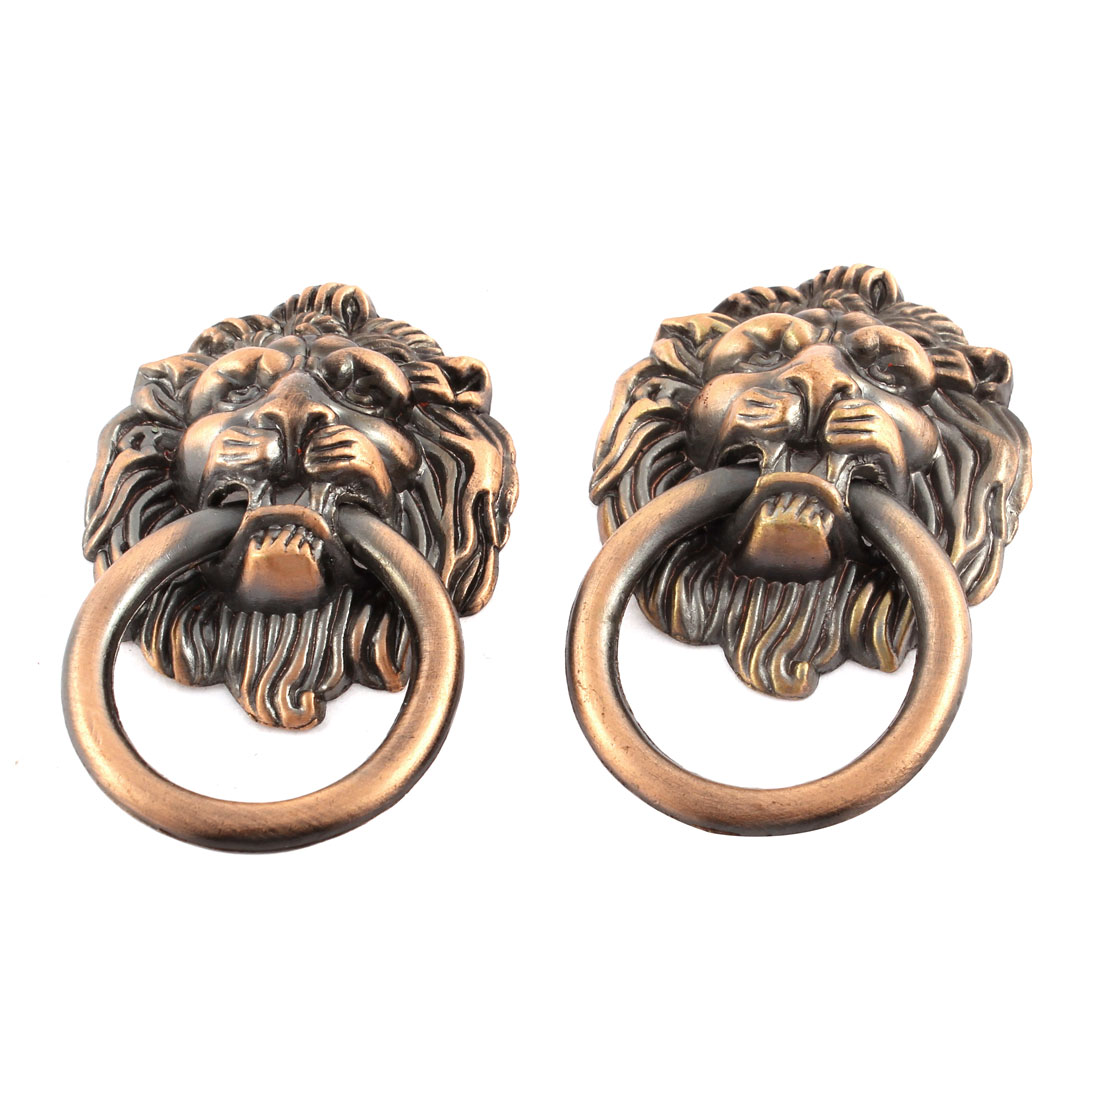 Furniture Hardware Copper Tone Lion Head Shape Door Knob Pull Handle 2 Pcs